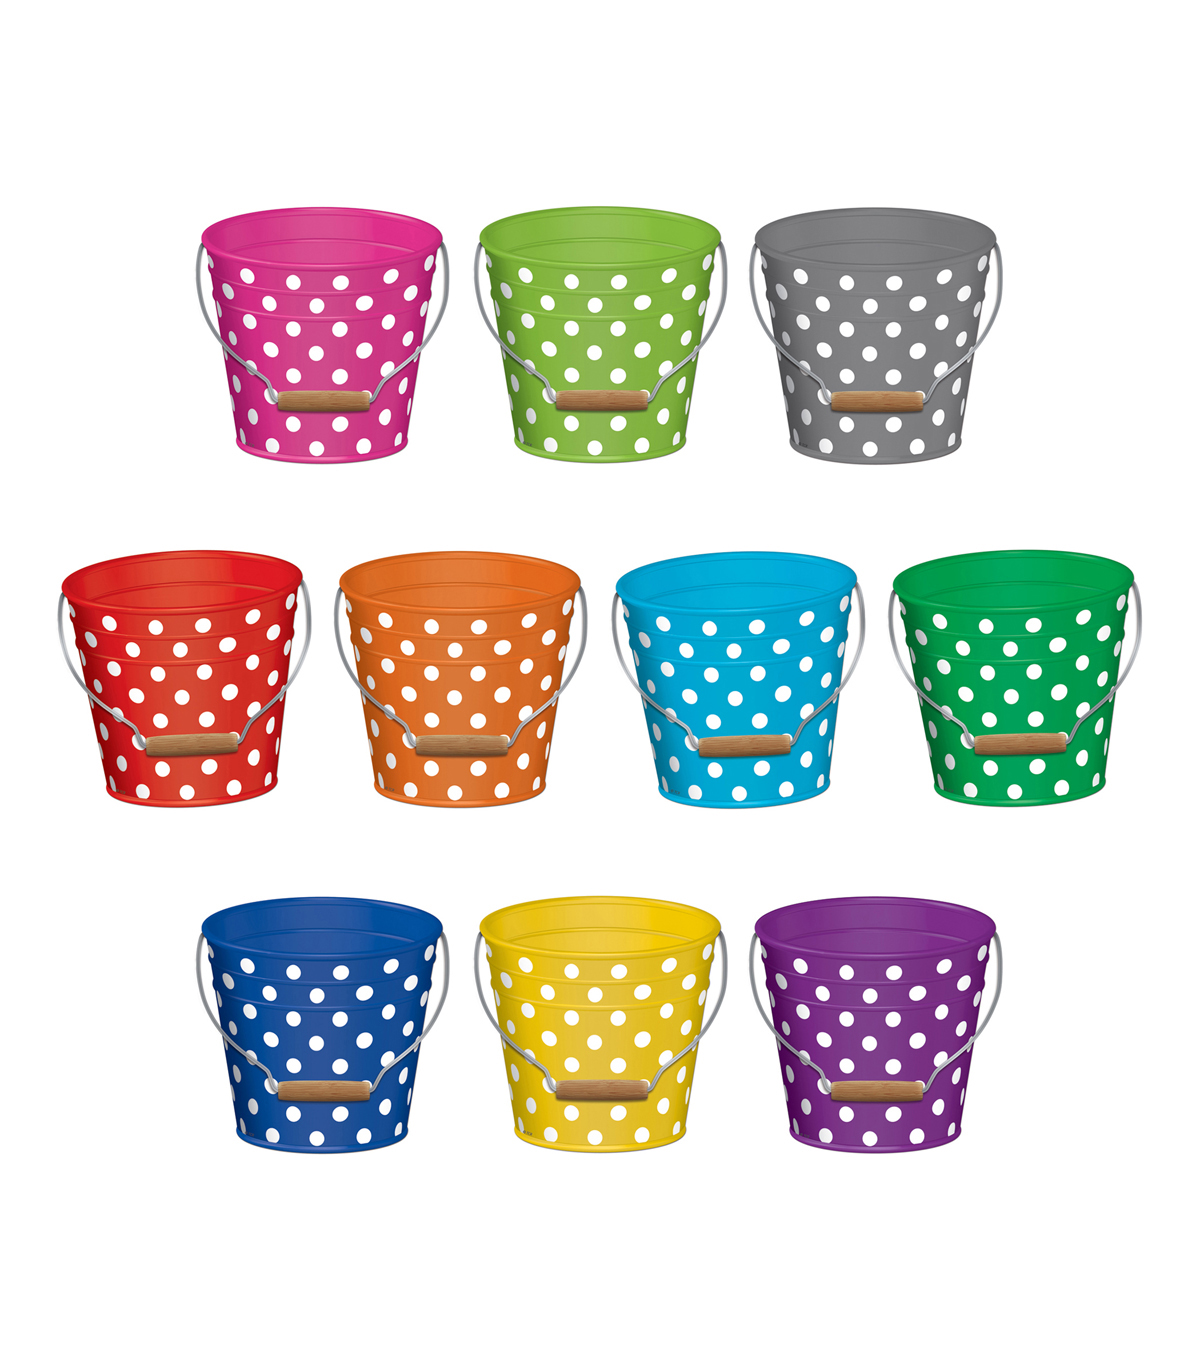 Teacher Created Resources Polka Dots Buckets Accents, 30/Pack, 3 Packs